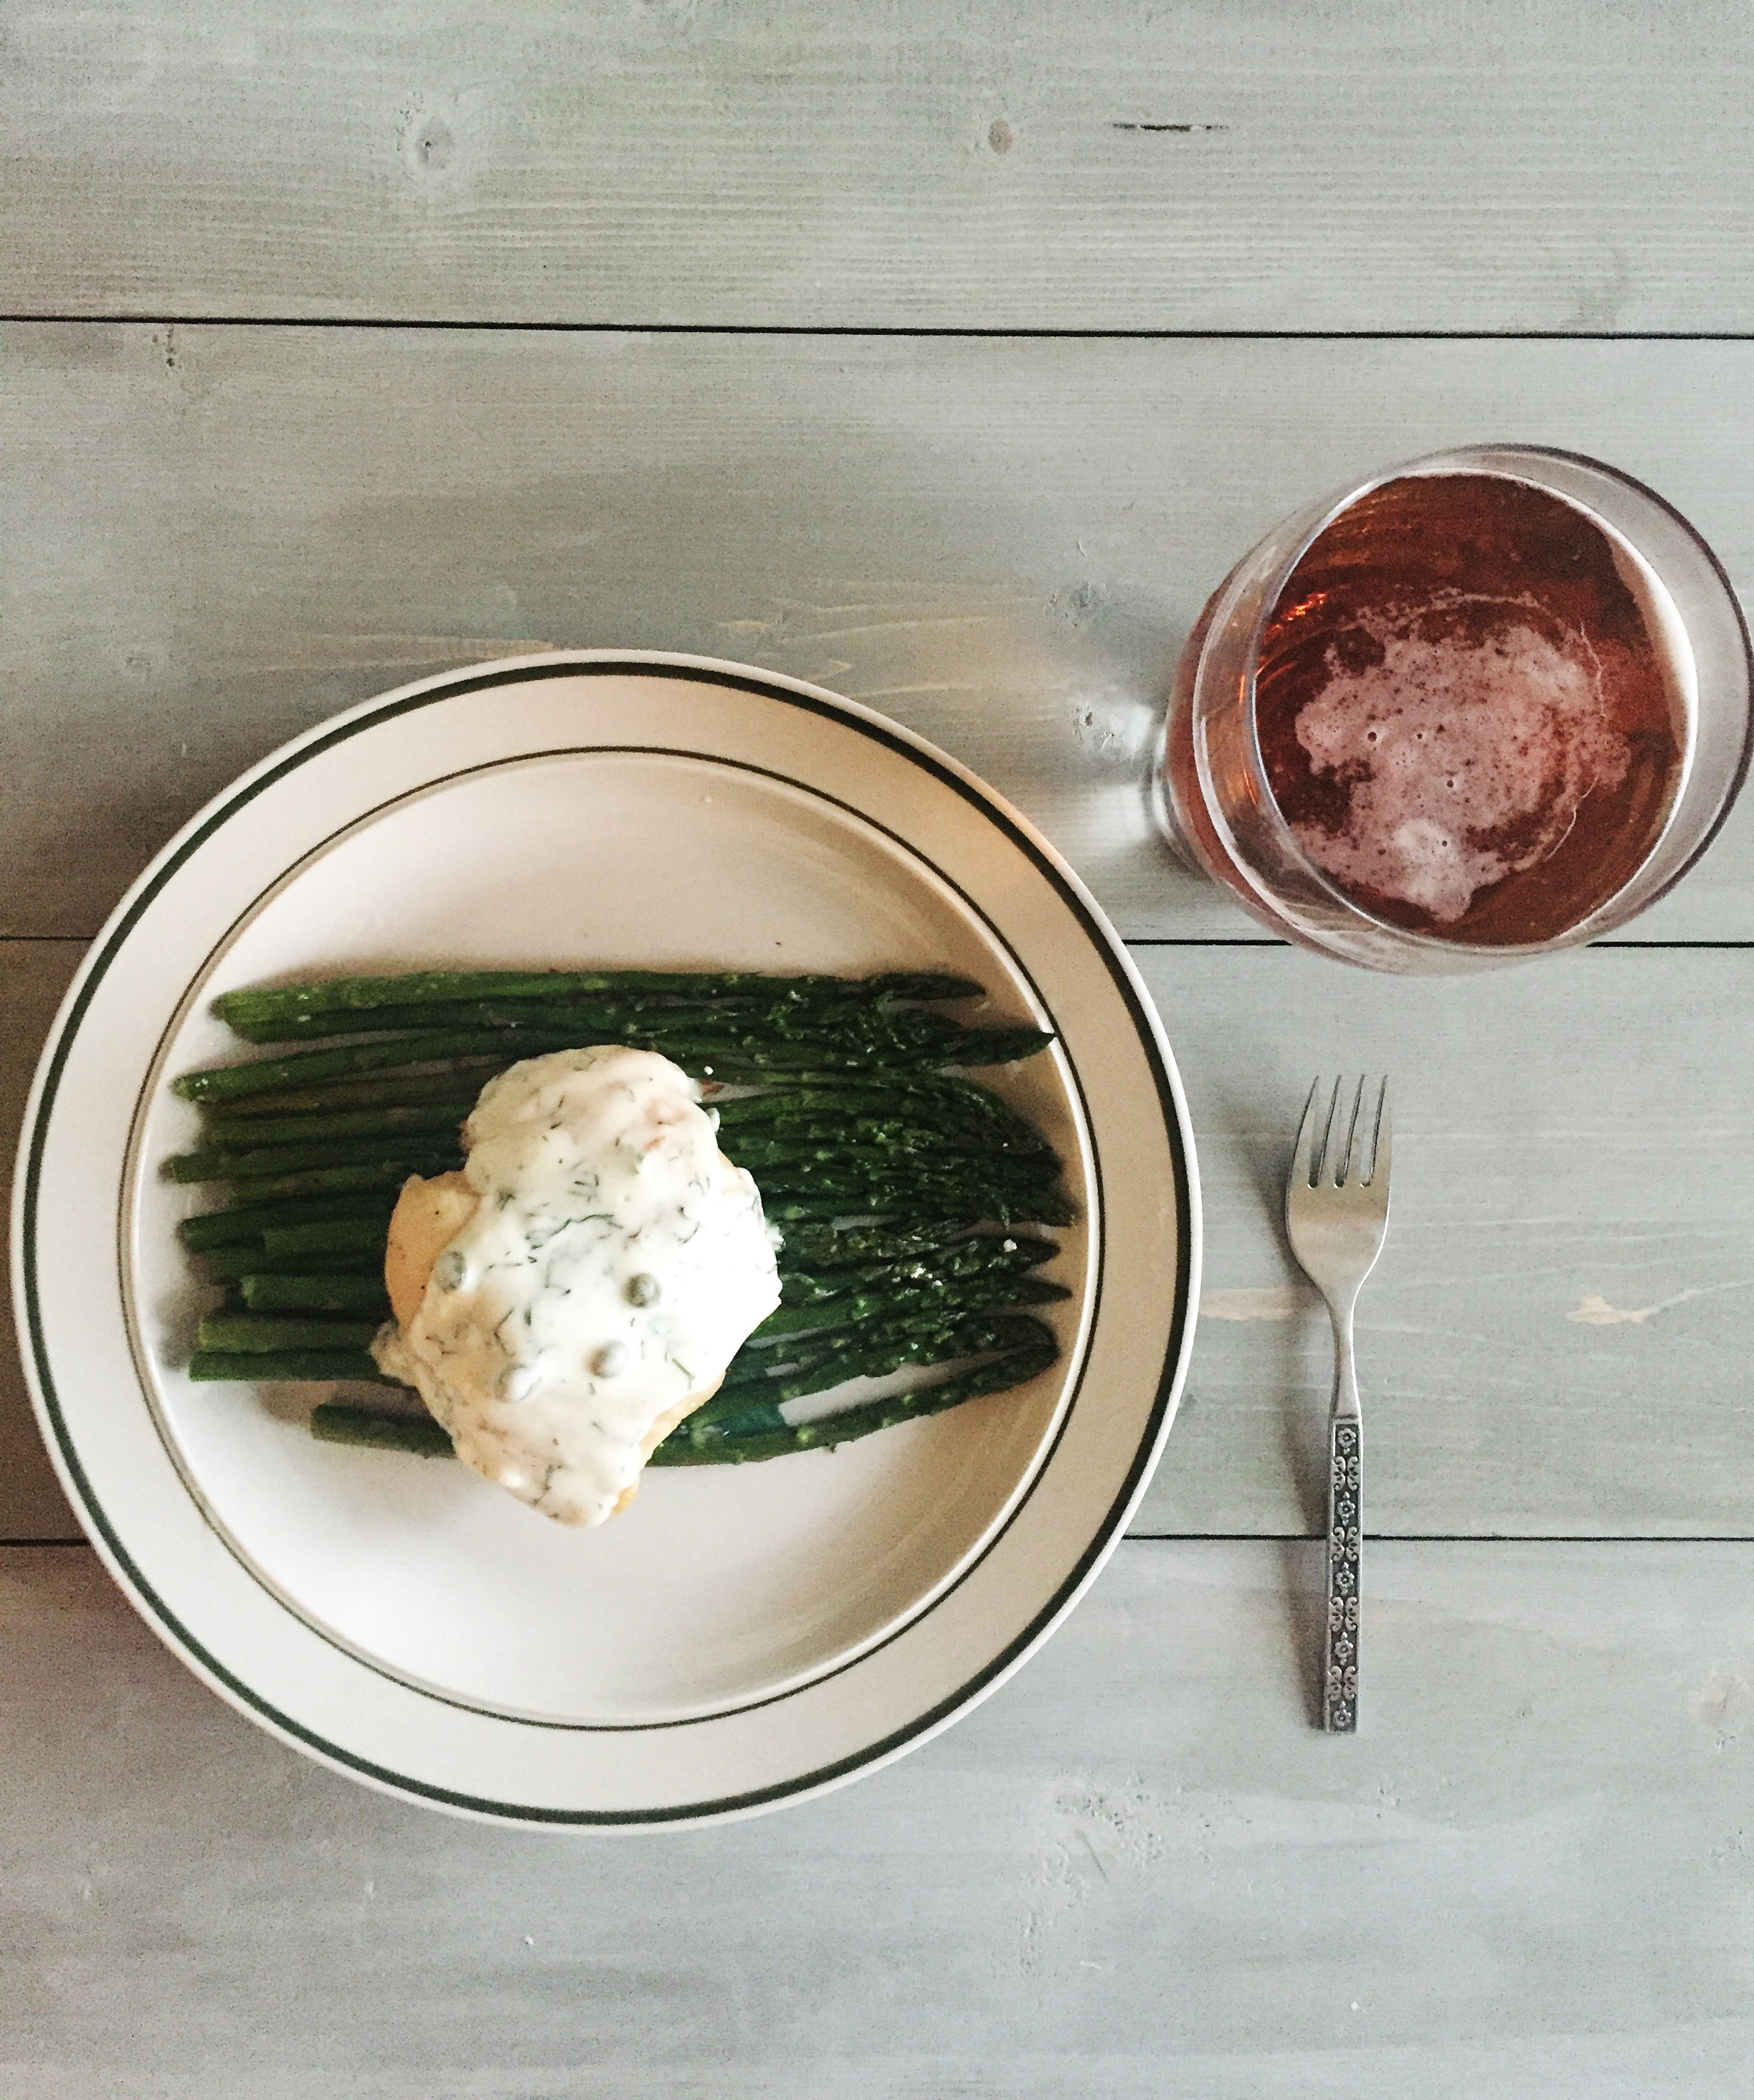 Dinner for Two: Chicken Breast with Roasted Asparagus || Town Lifestyle + Design || Great dinner recipe for any date night or special holiday. Quick and Easy for any family dinner night too.